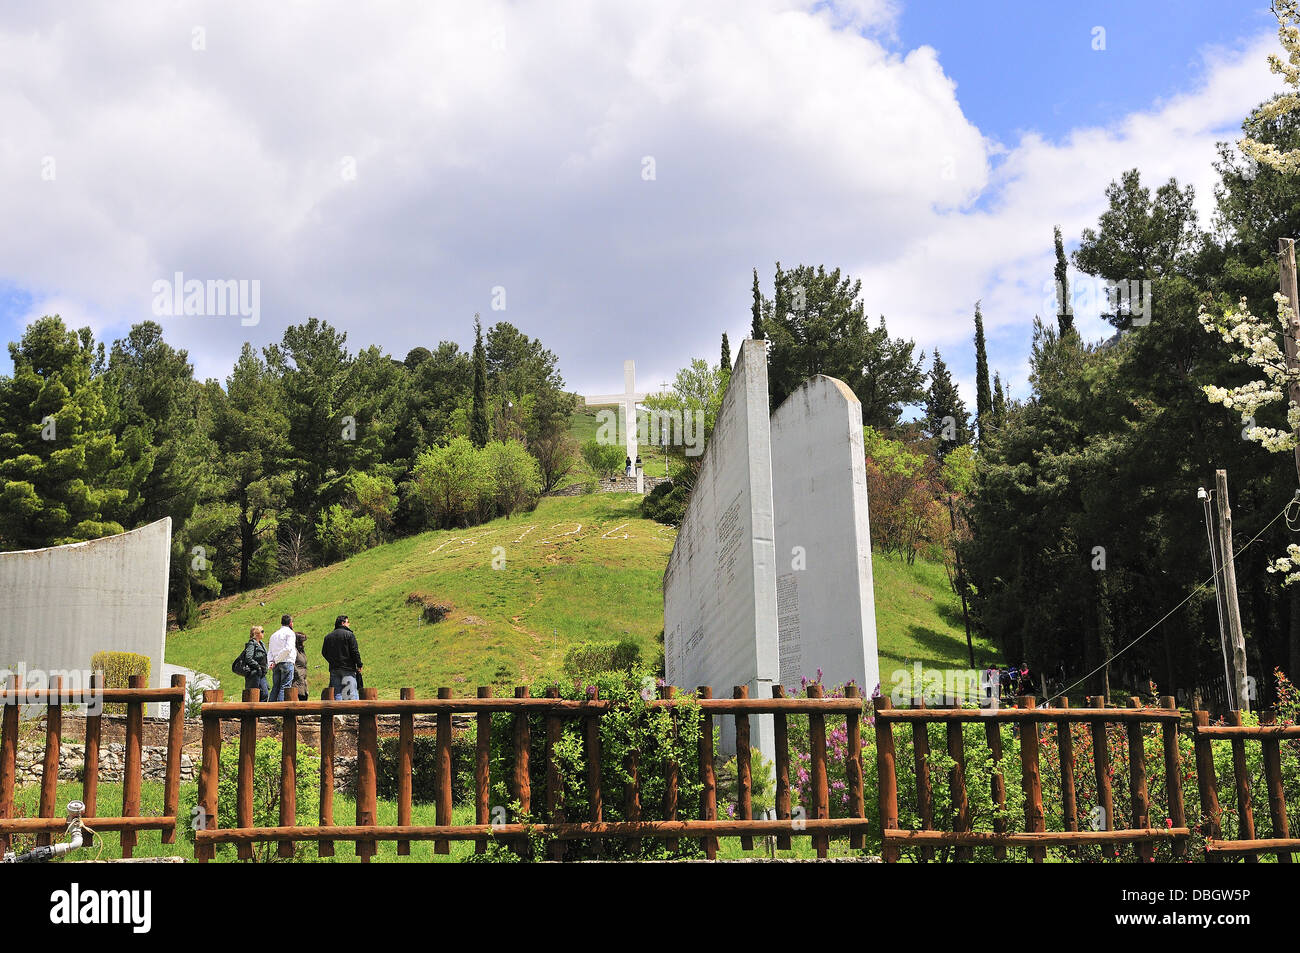 The memorial site of Massacre of Kalavryta on a hill overlooking the town. Kalavryta , Peloponnese Greece - Stock Image